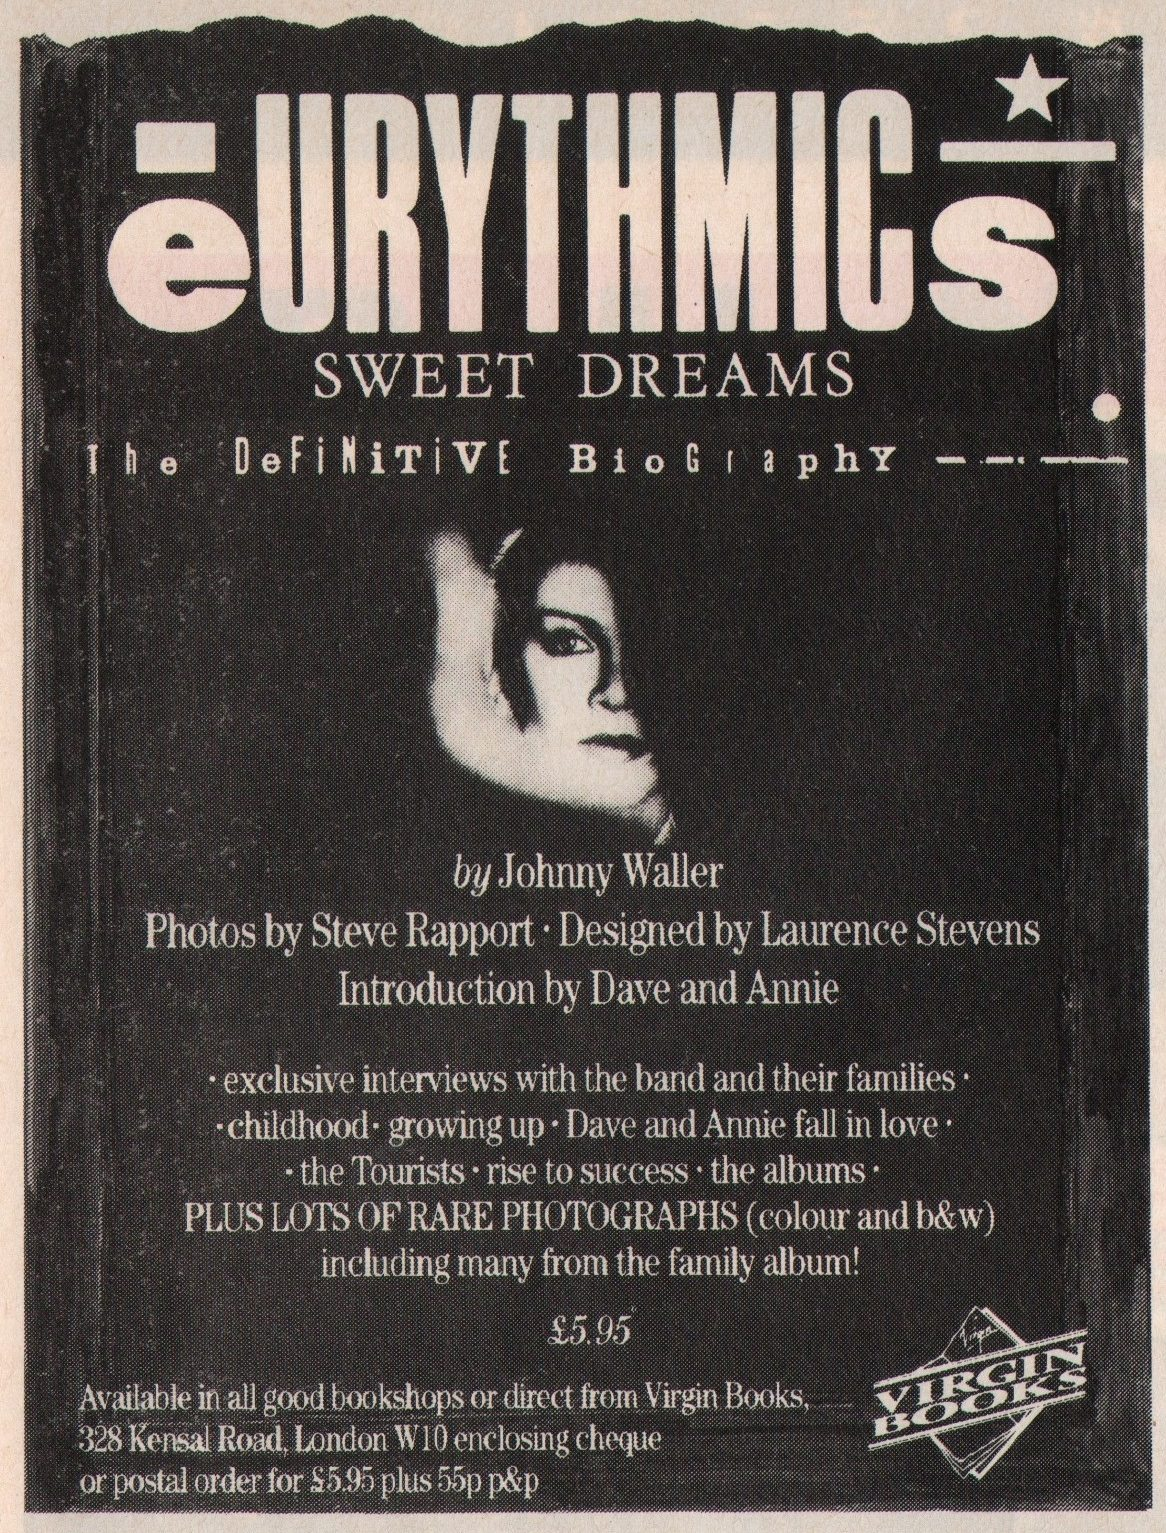 Eurythmics Memorabilia : Smash Hits advert for Eurythmics Definitive Biography published 30 years ago.